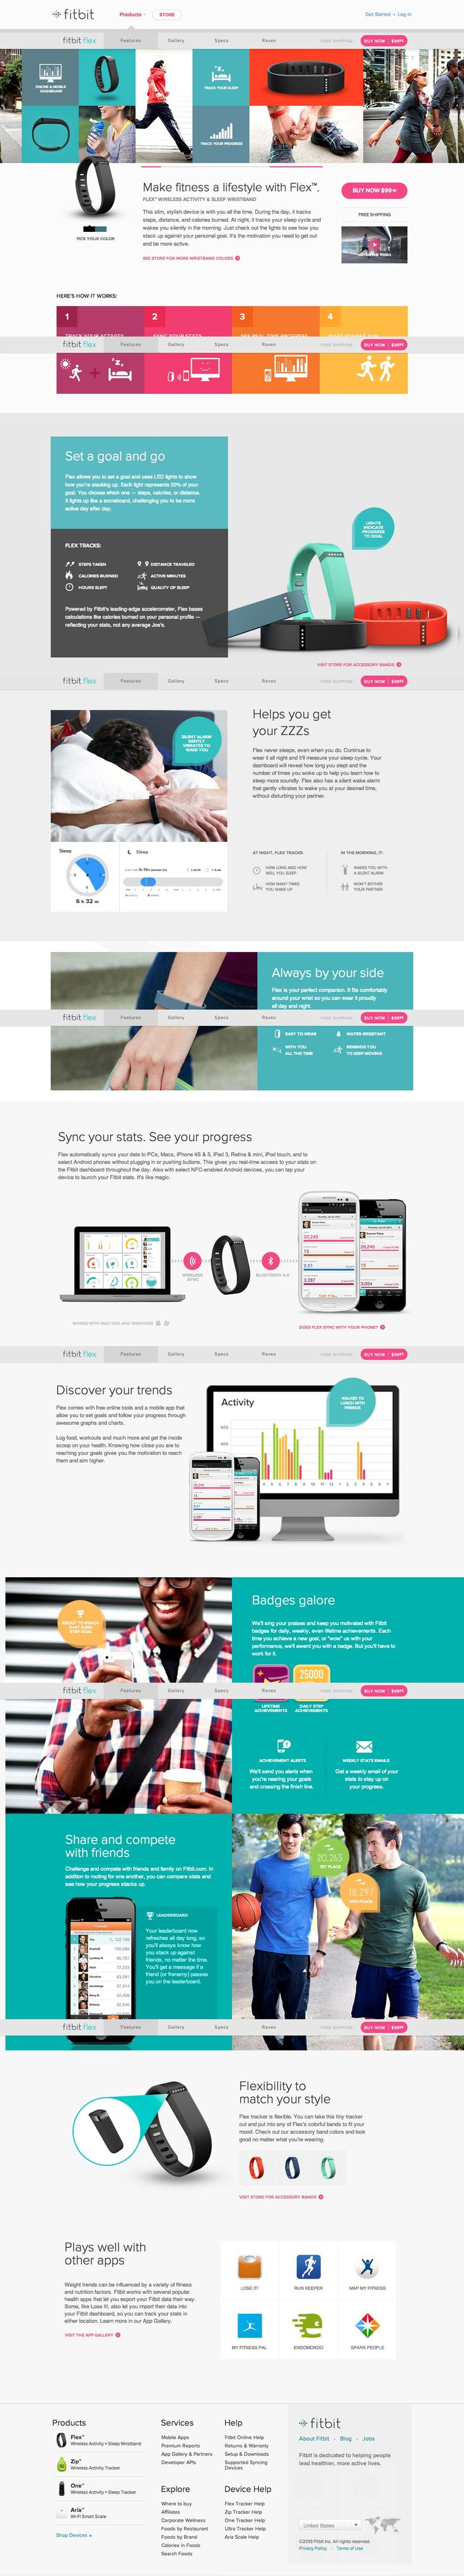 I Love my new Fitbit Flex, here is some product info for everyone that keeps asking me about it. Get one and lets motivate each other! http://www.fitbit.com/flex